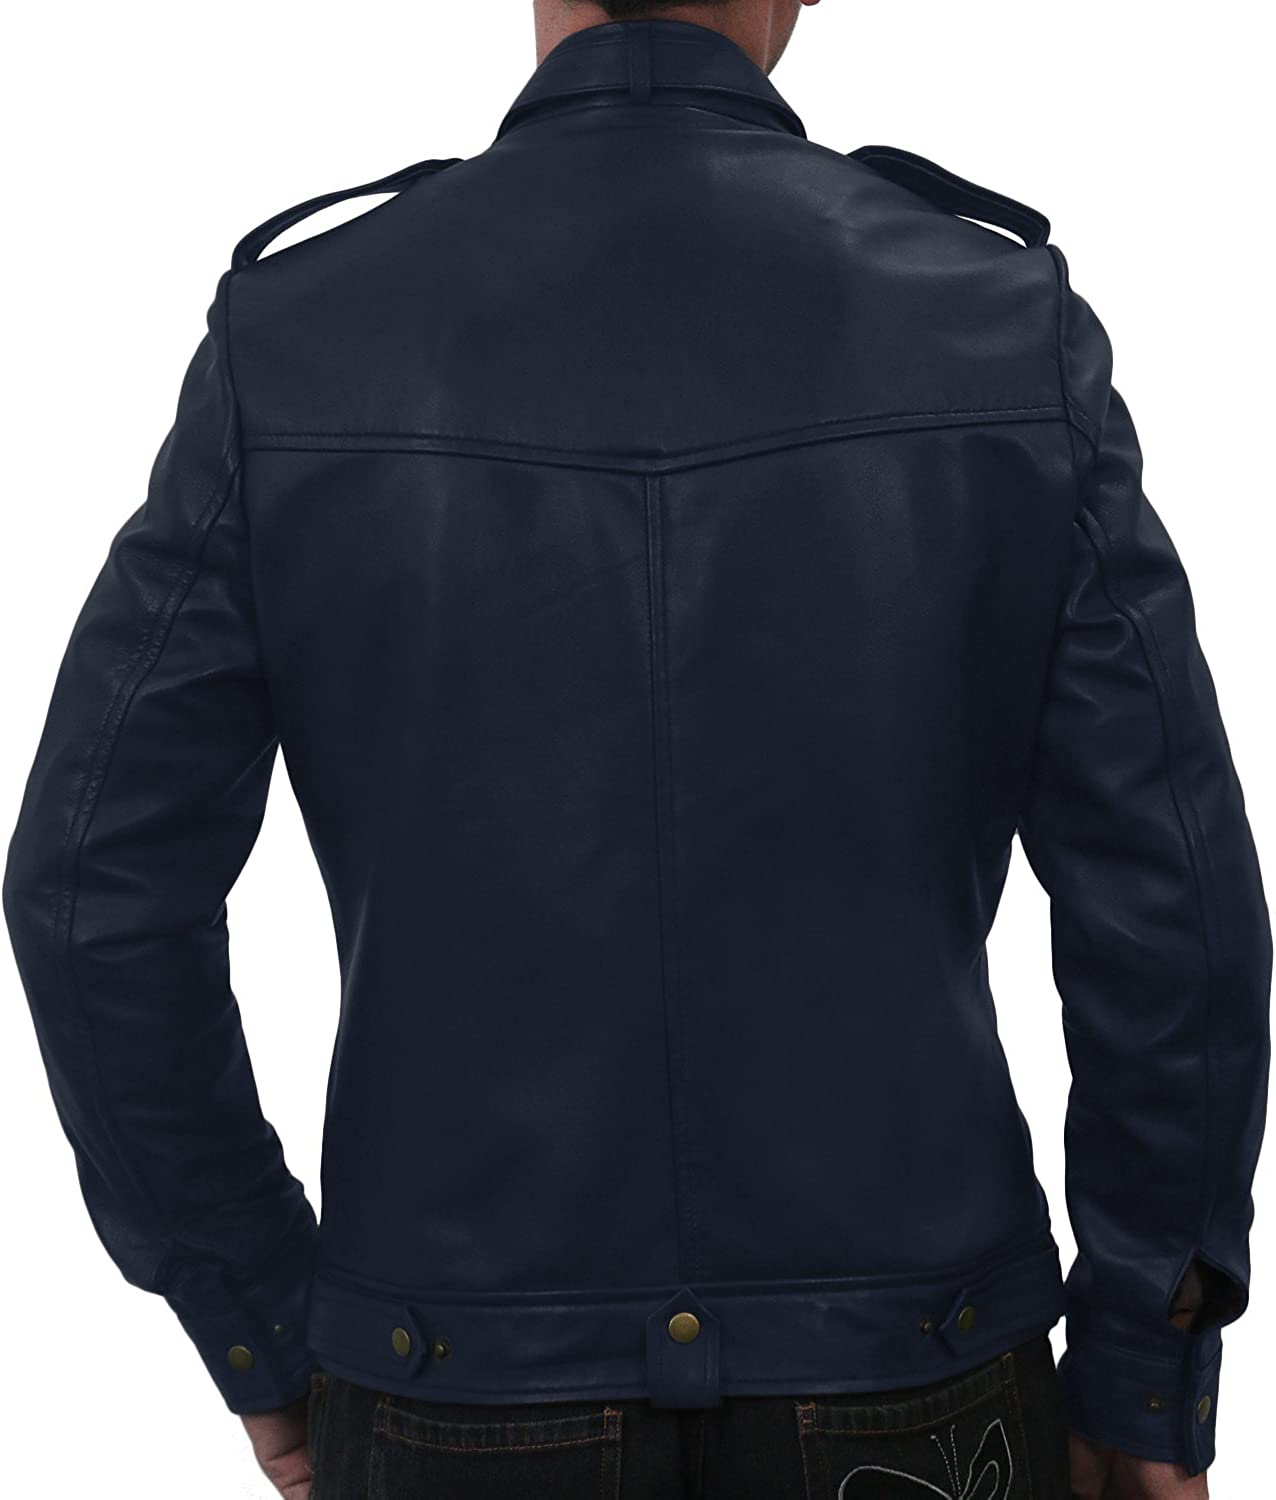 Black, Officer Jacket Laverapelle Mens Genuine Lambskin Leather Jacket 1501075